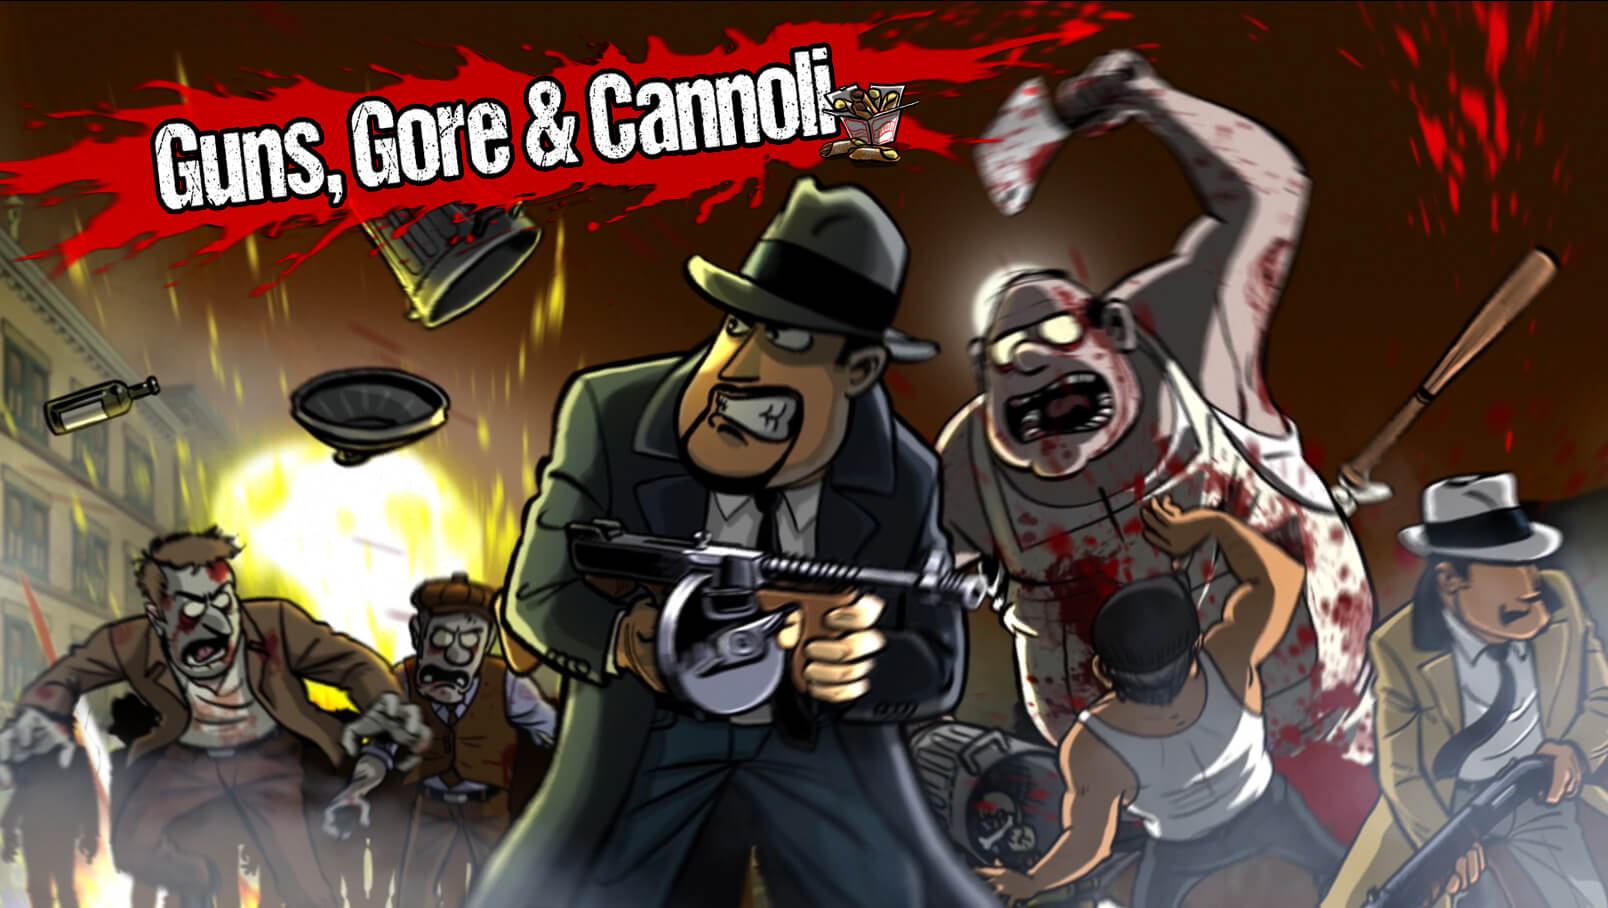 Guns, Gore and Cannolie